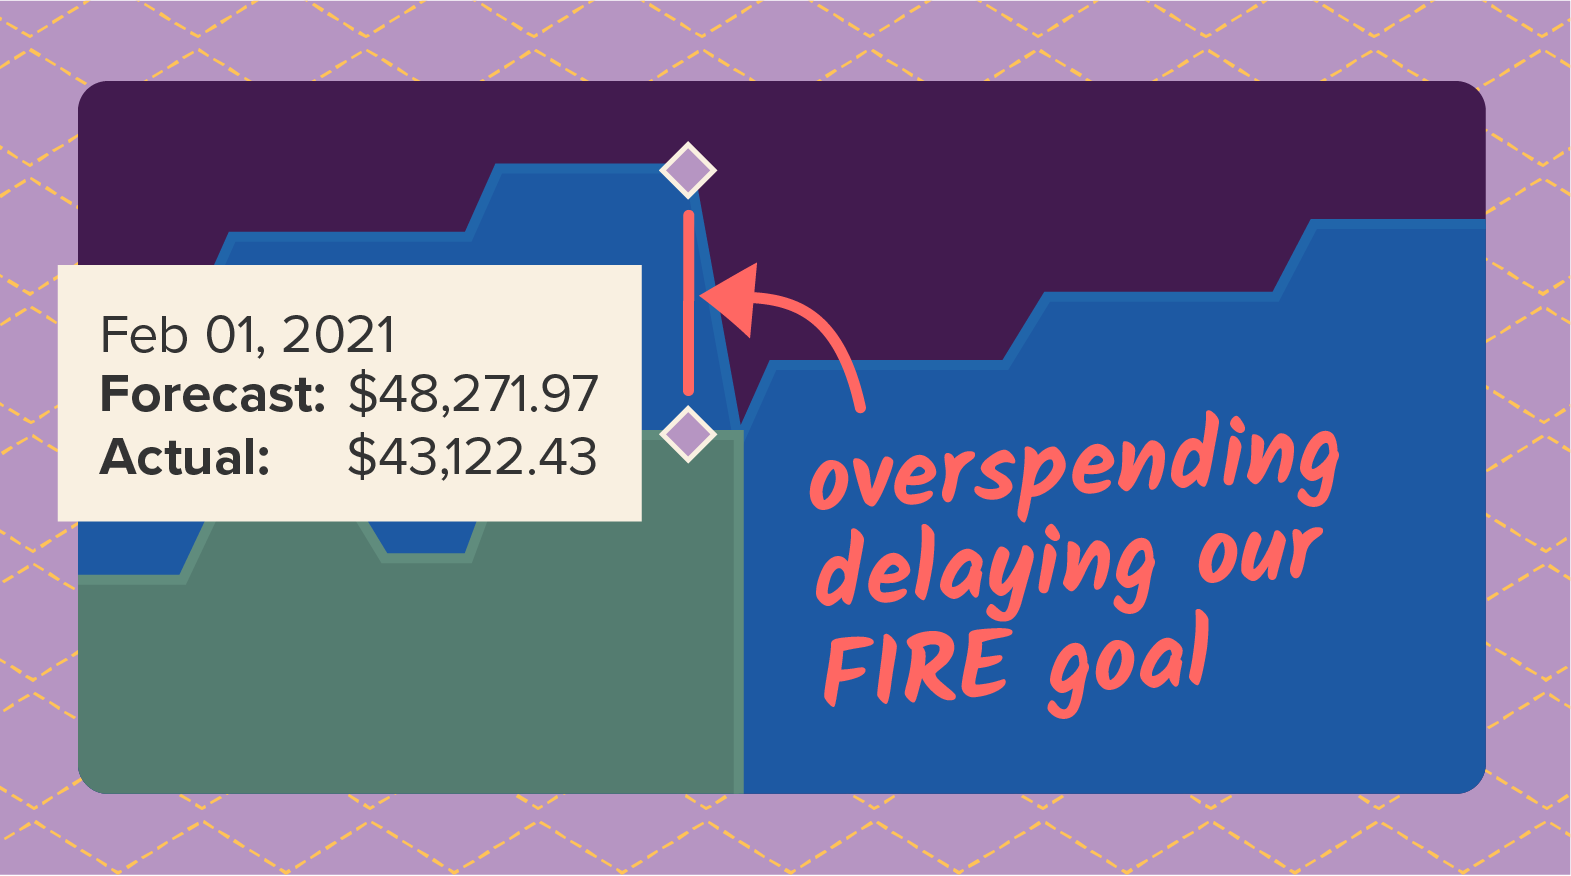 Check your forecast to see if overspending is delaying your FIRE goal